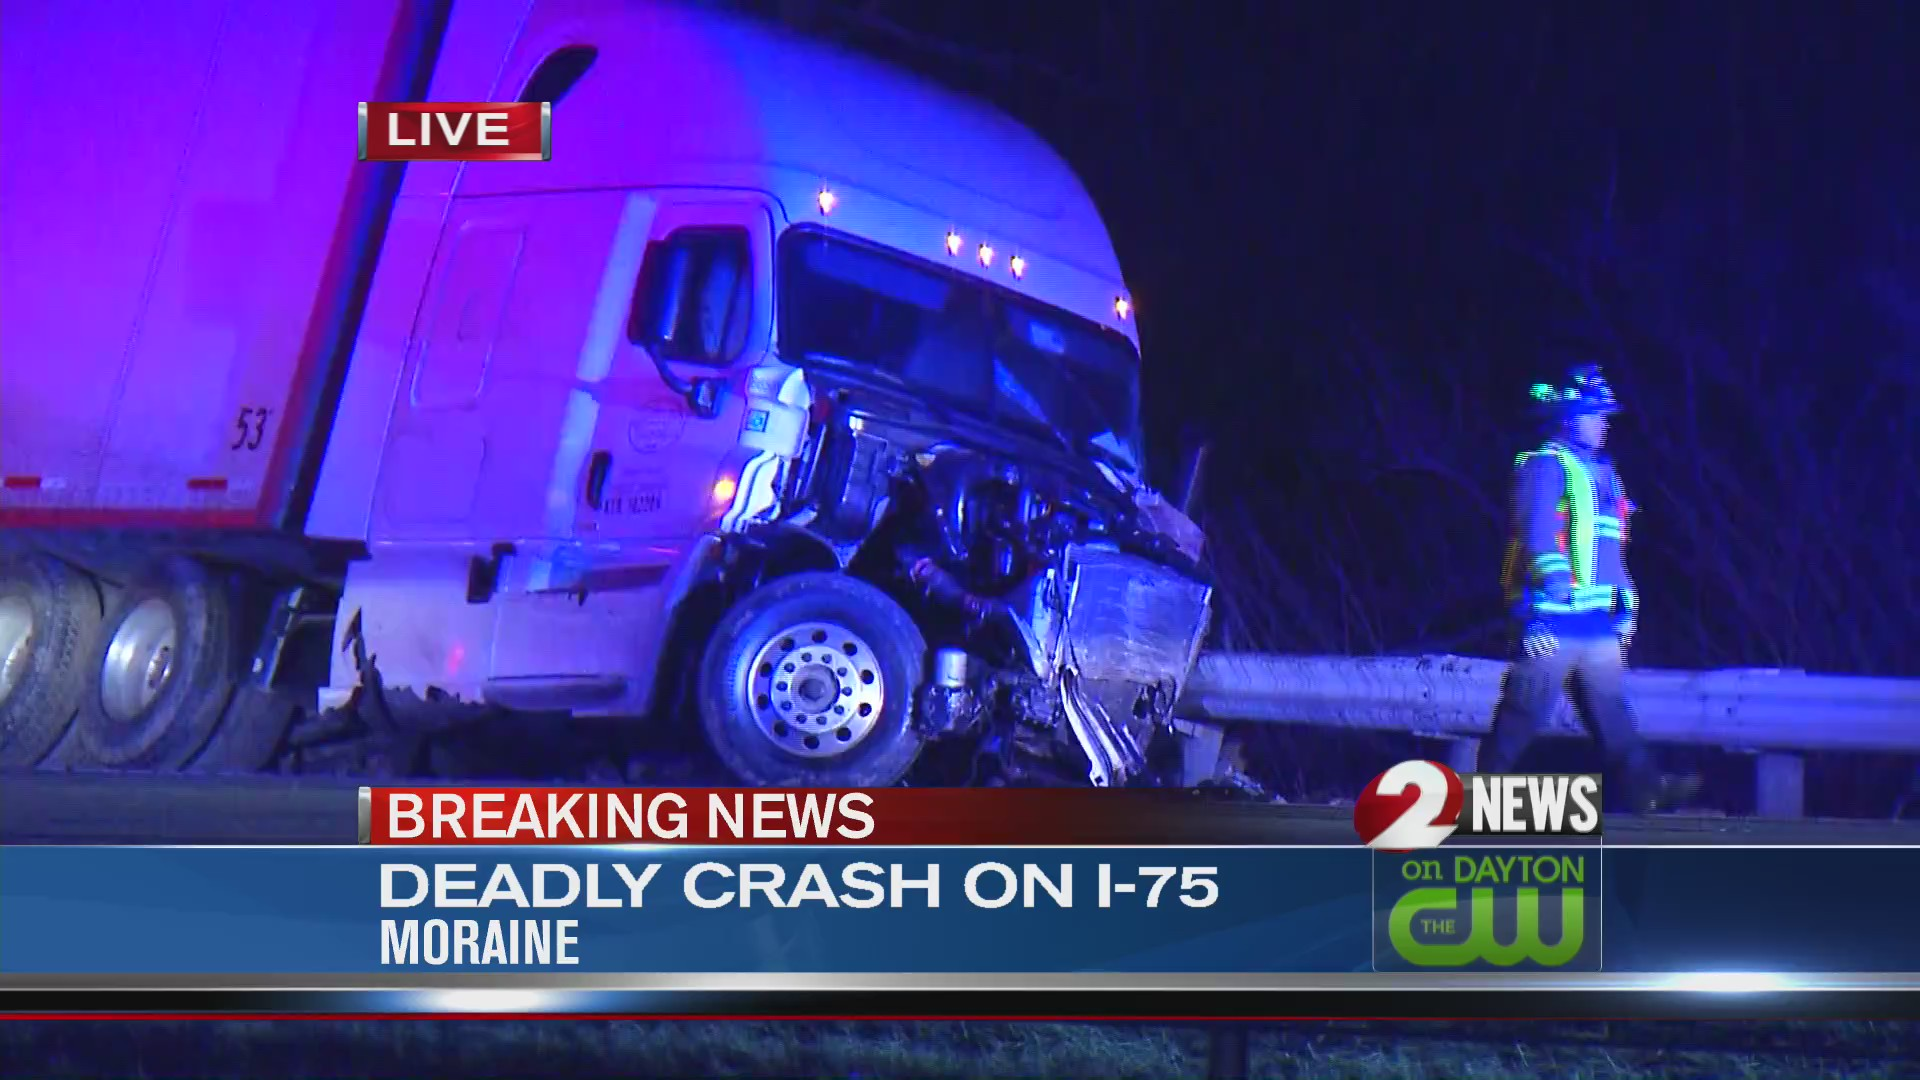 Deadly crash on I-75